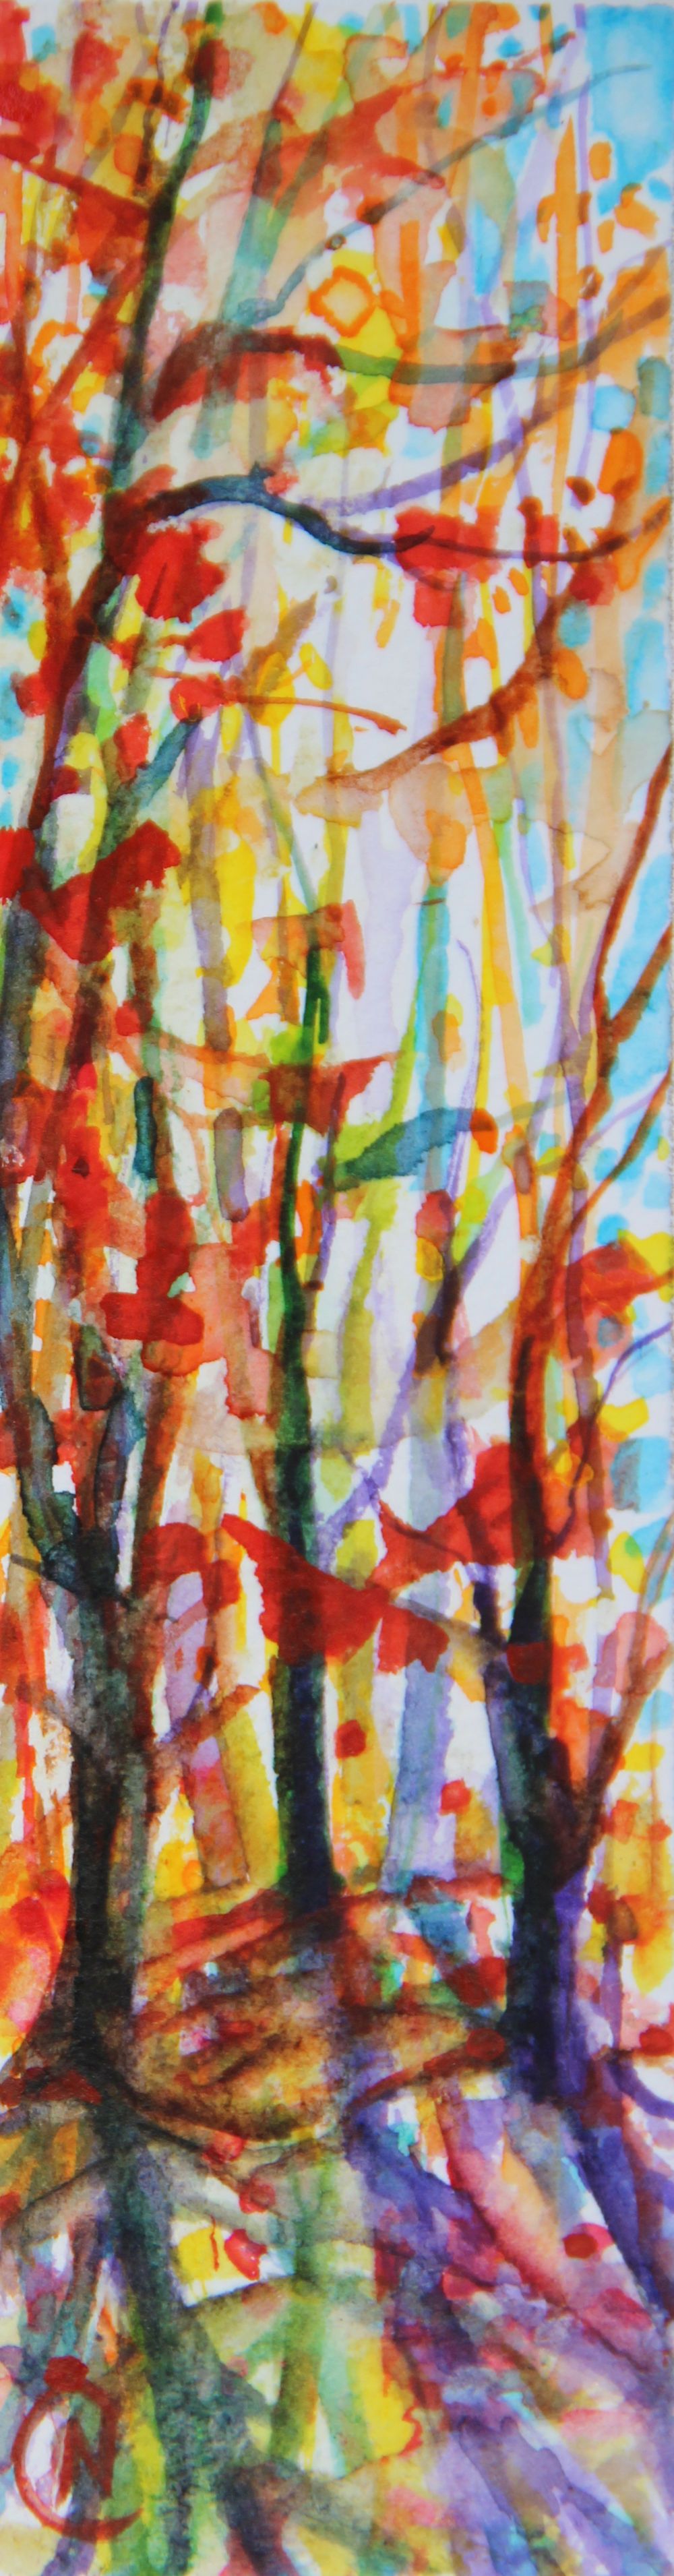 Autumn Forest Scene 10, about 6H x 2W inches watercolors on 140 lb cold pressed